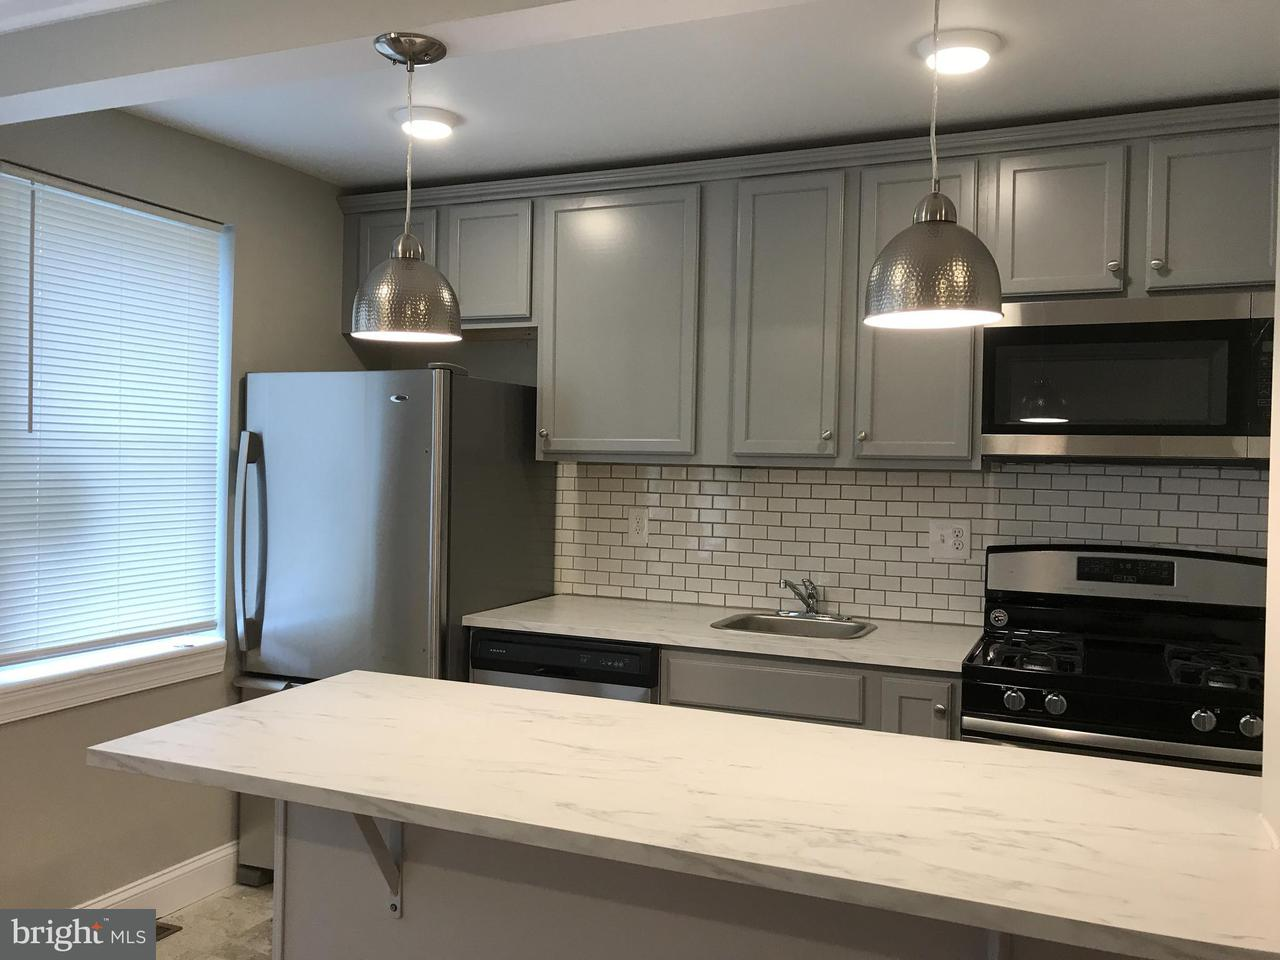 Other Residential for Rent at 5402 Midwood Ave #1 Baltimore, Maryland 21212 United States